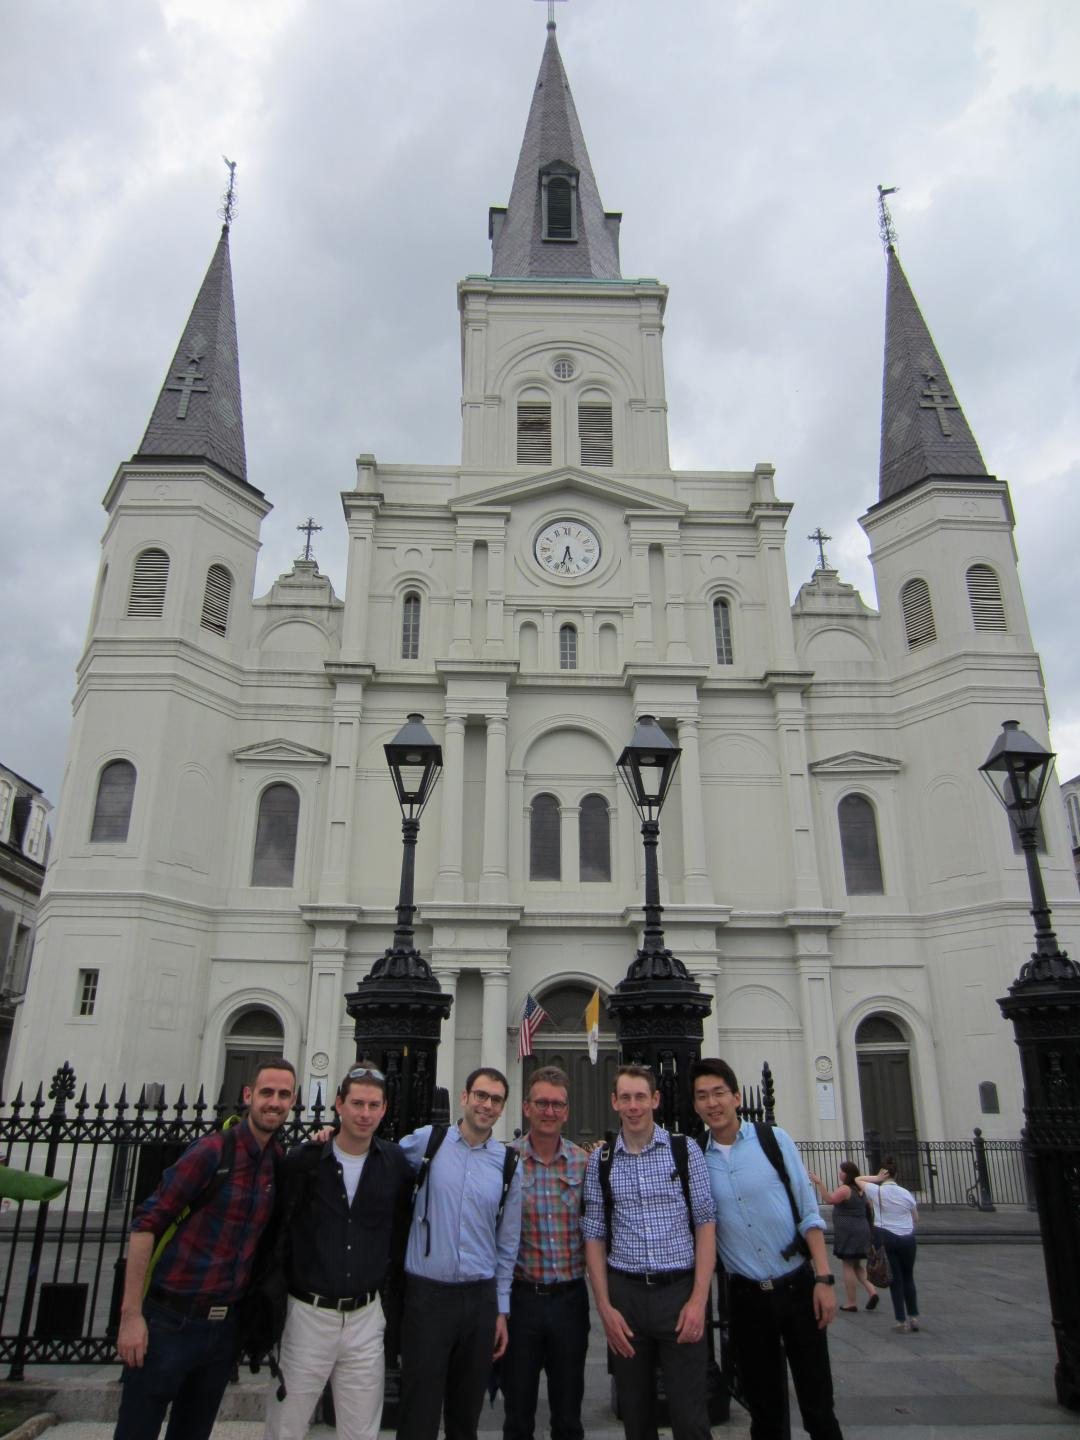 Group photo in New Orleans.